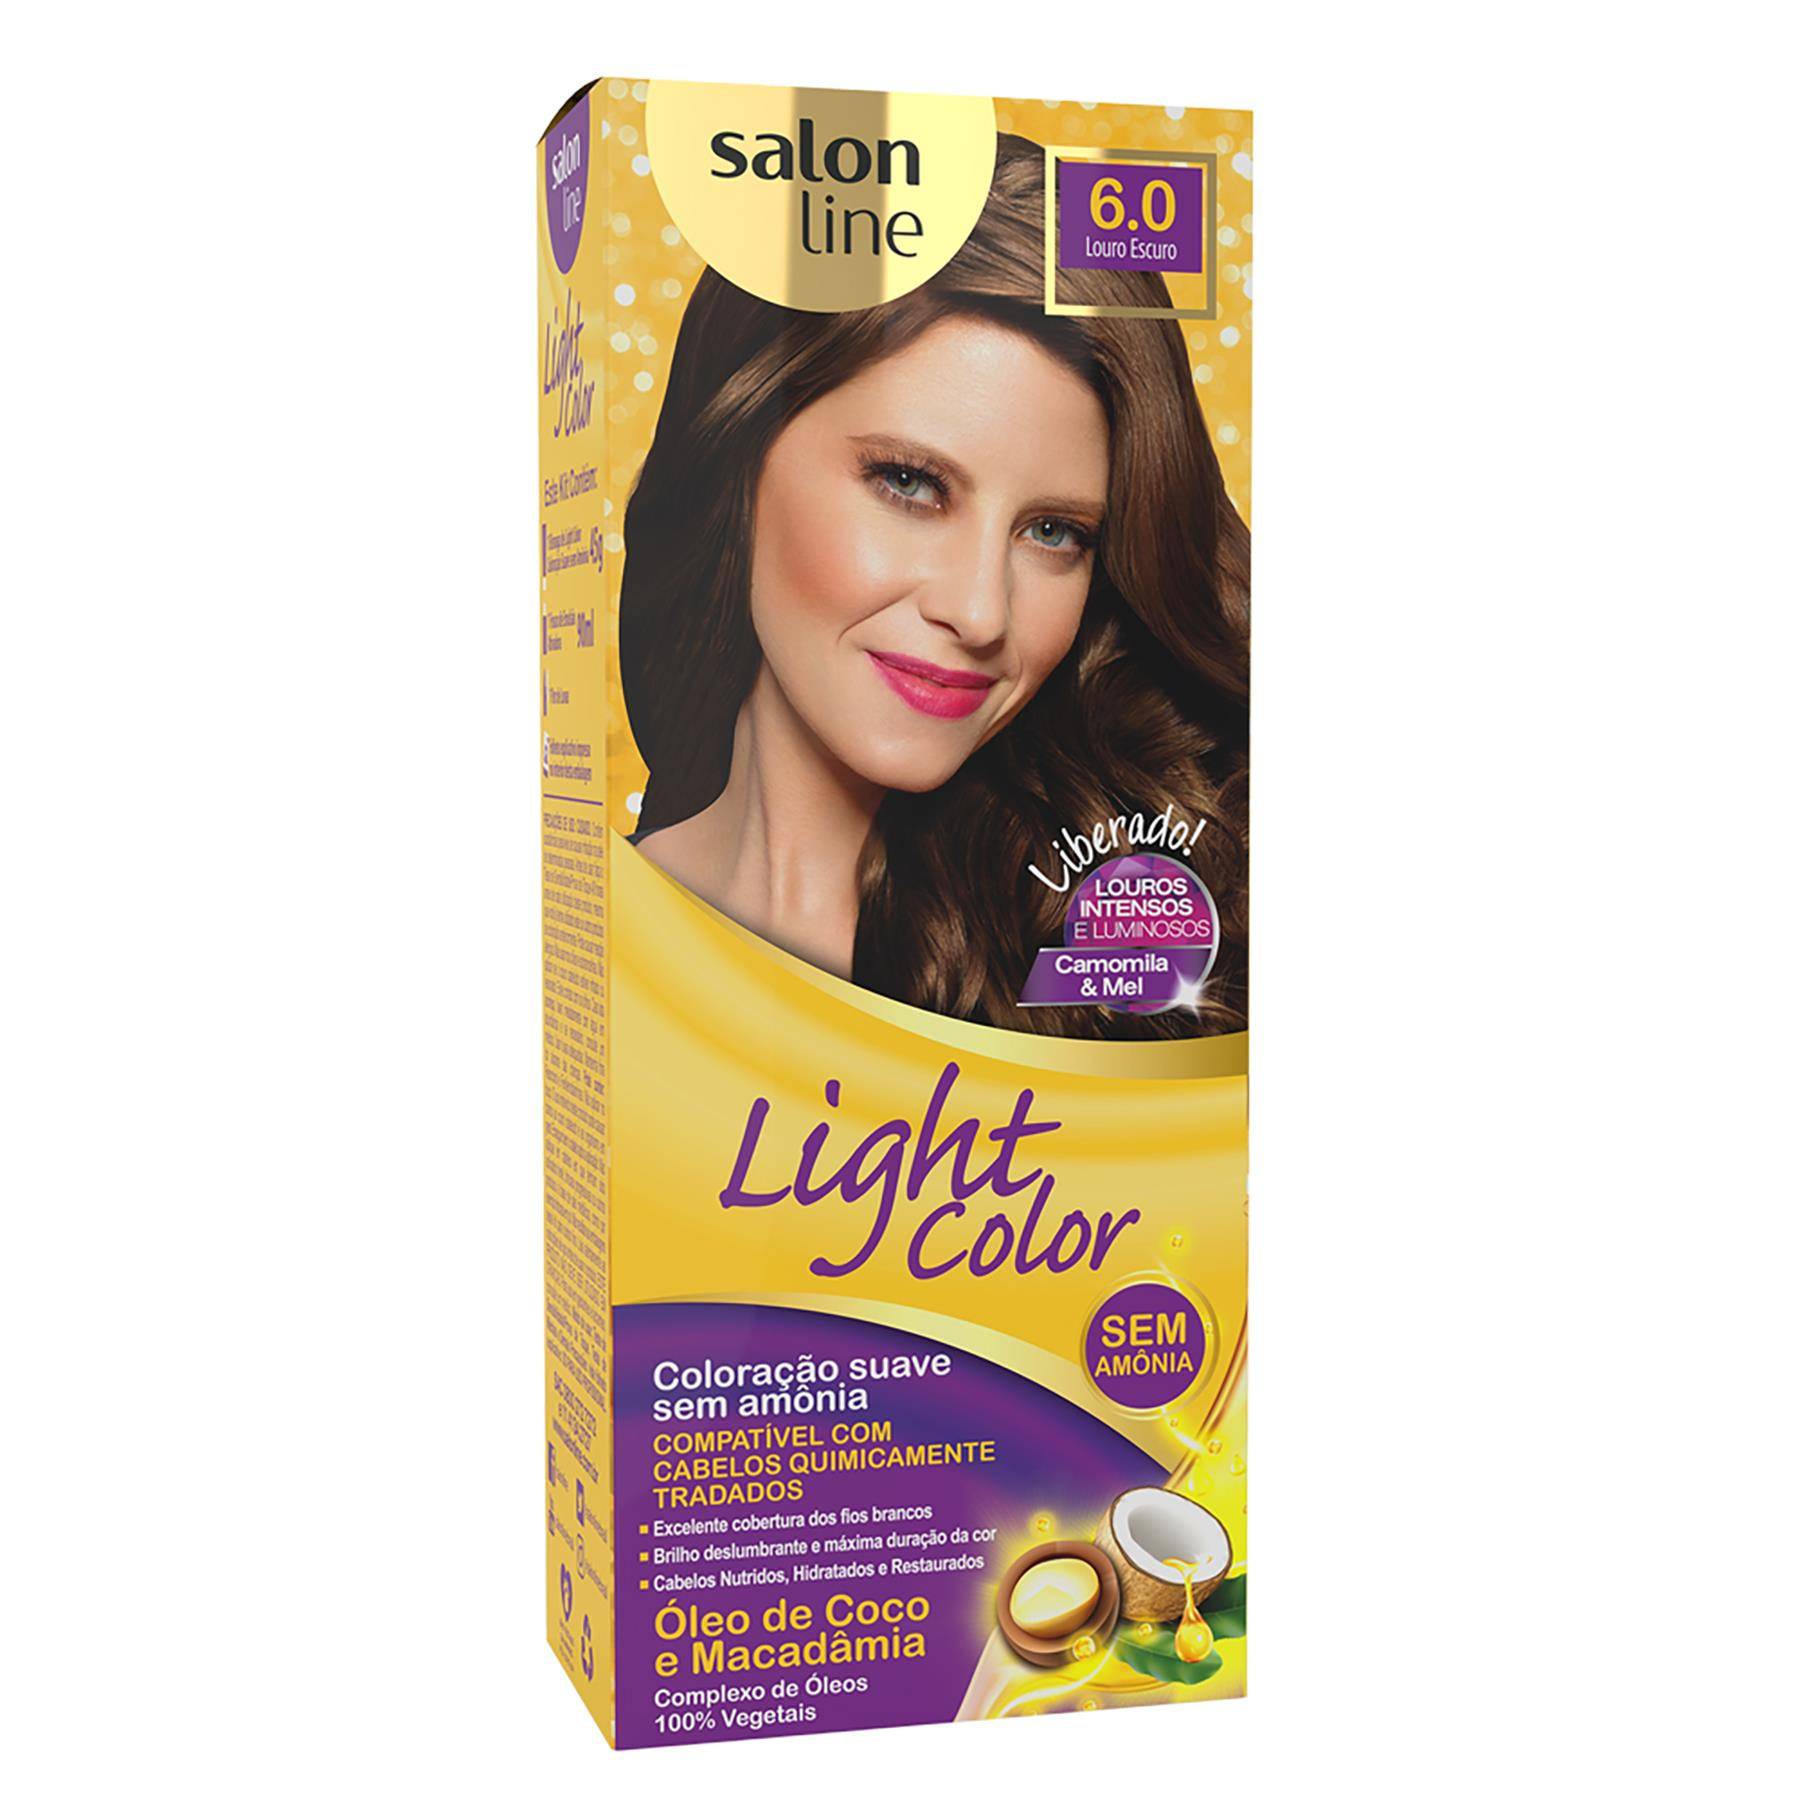 COLORAÇÃO LOURO ESCURO 6.0 - LIGHT COLOR SALON LINE